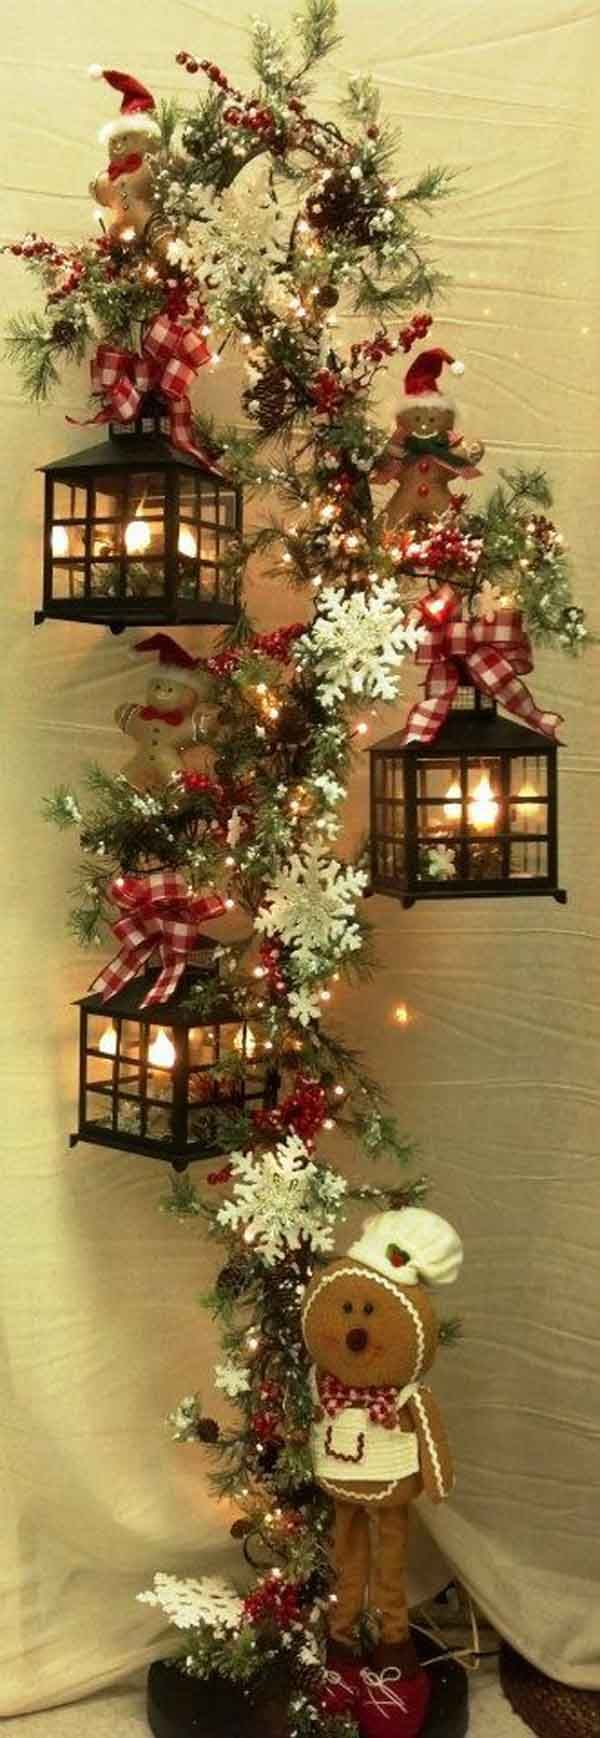 Classy christmas decorations ideas the xerxes for Classy xmas decorations